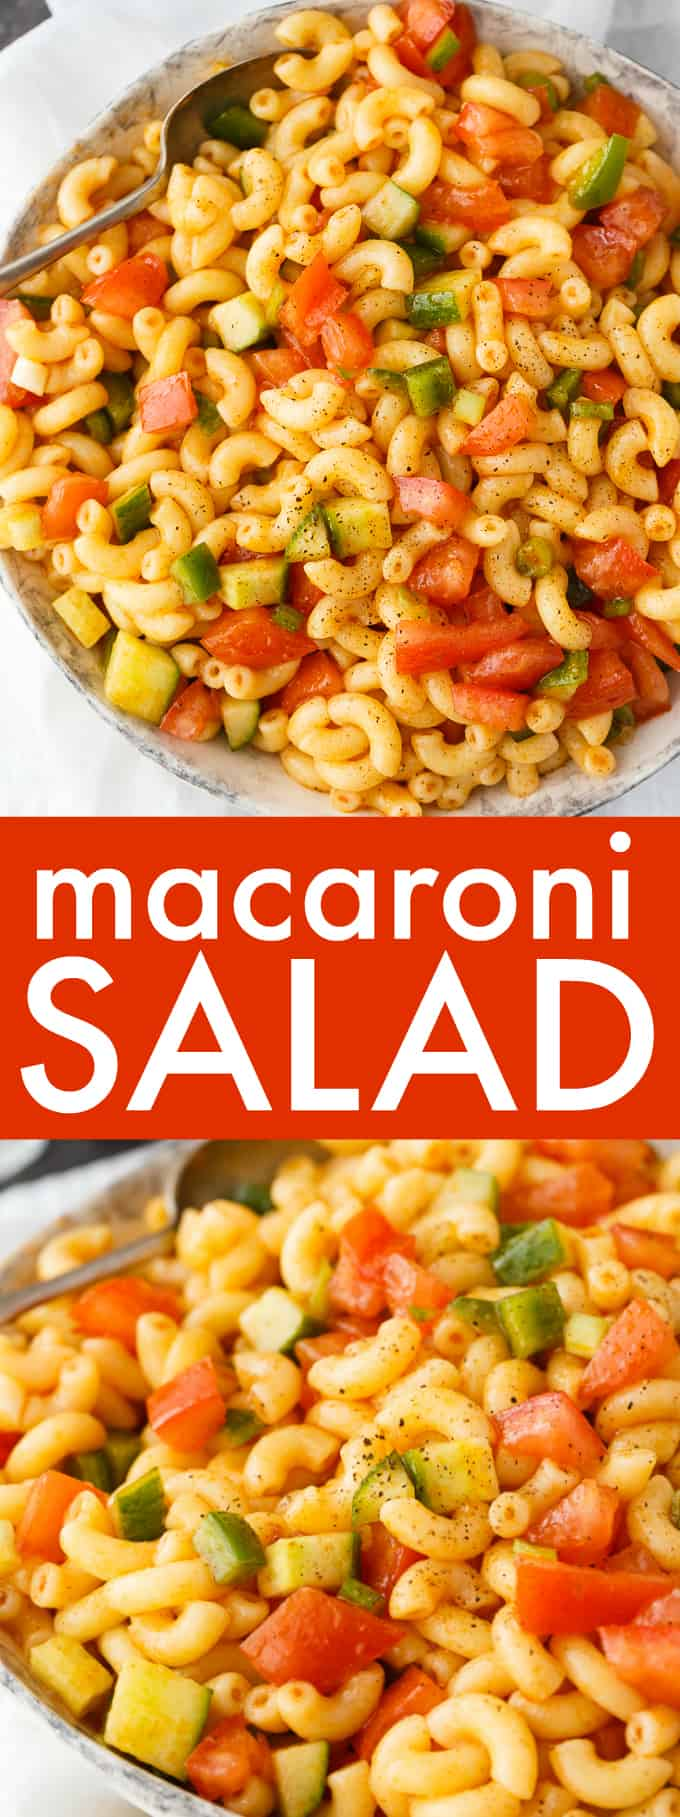 Macaroni Salad - This simple summer salad will be a hit at your BBQs and picnics! It's full of fresh crunchy veggies, tender macaroni and a sweet mouthwatering dressing.